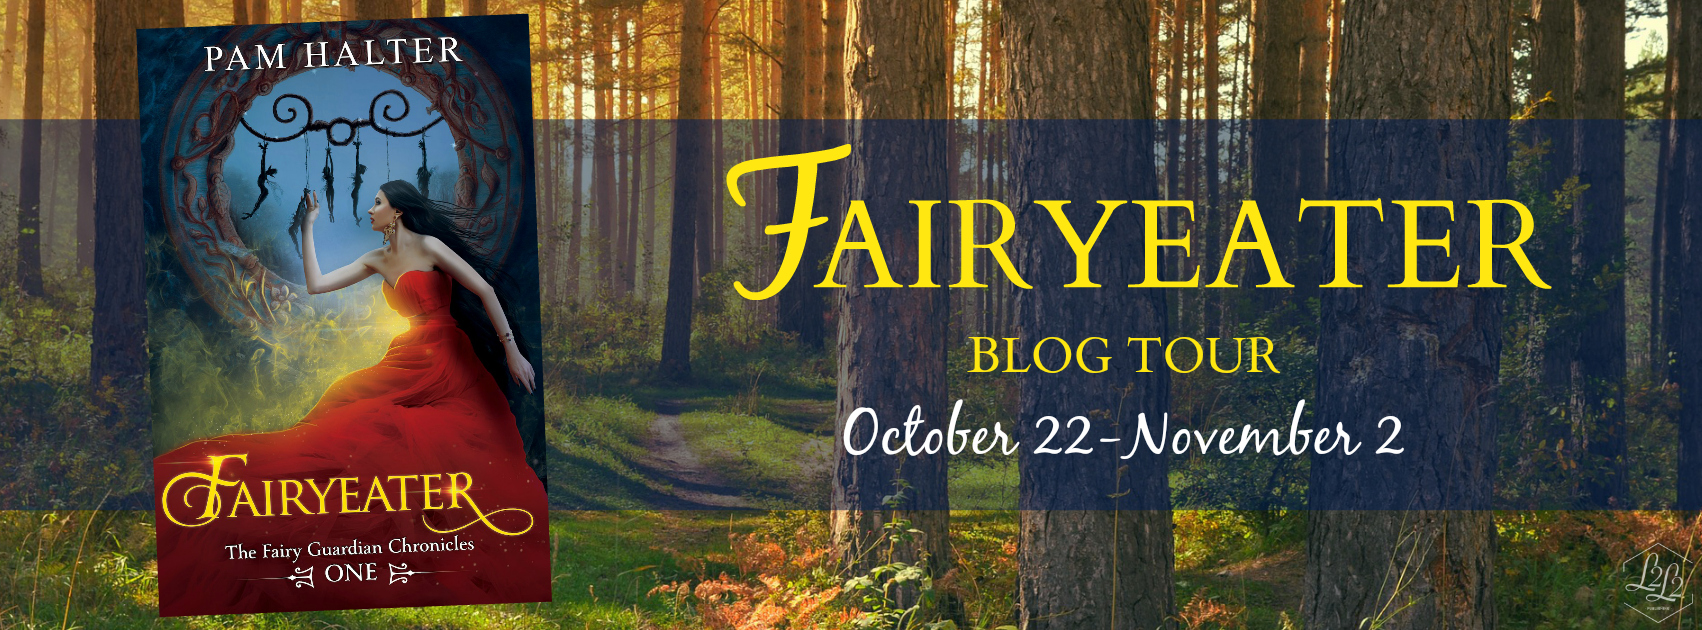 Fairyeater Blog Tour Mock-Up.jpg